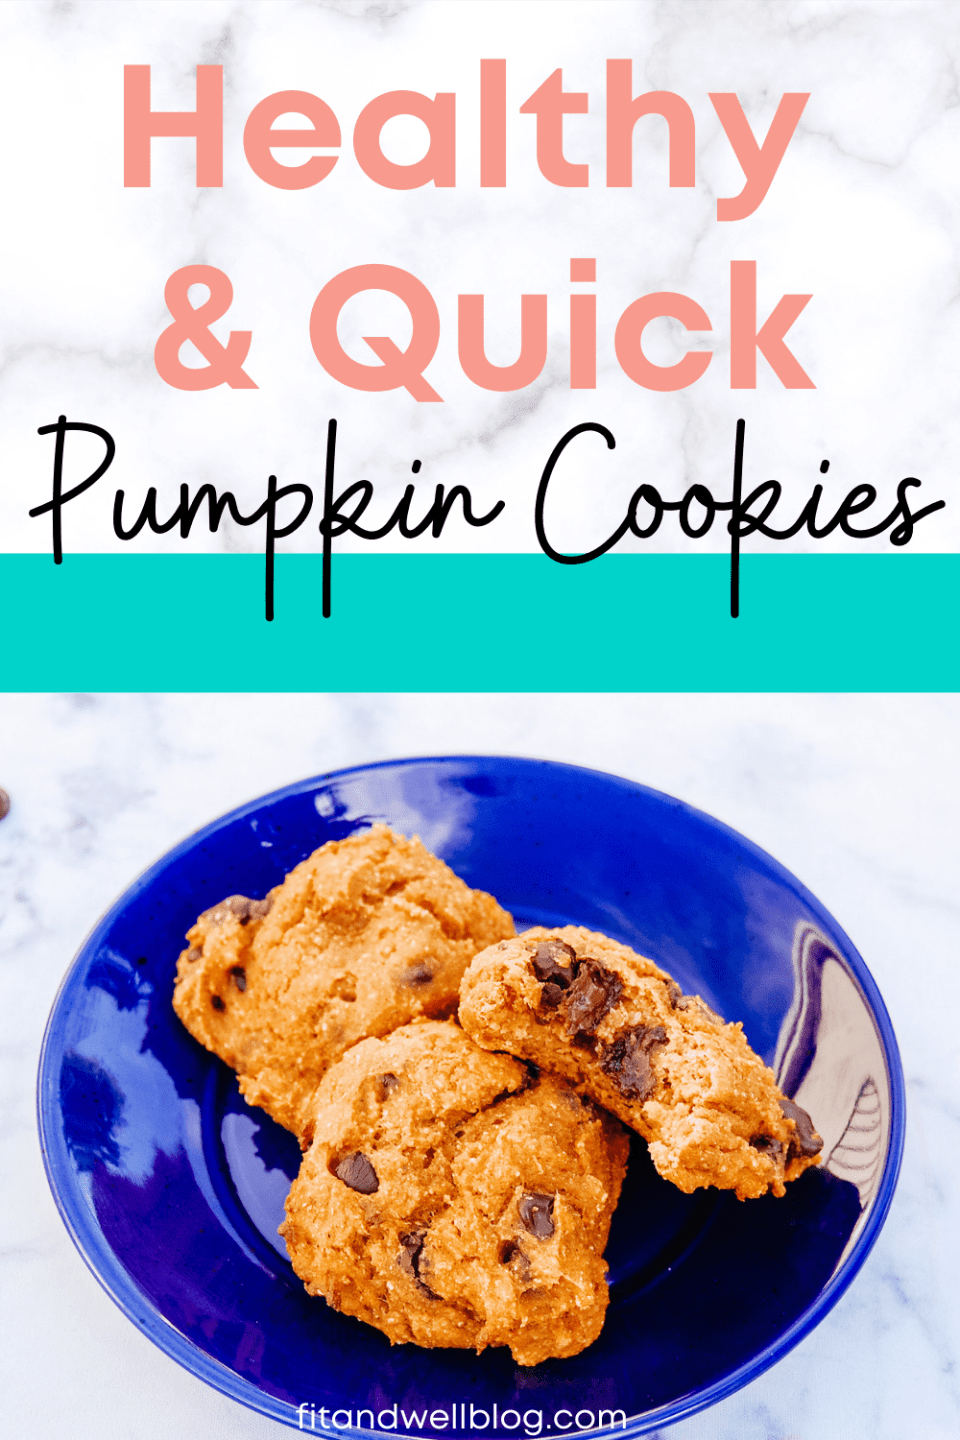 quick and healthy pumpkin cookies the whole family will love!